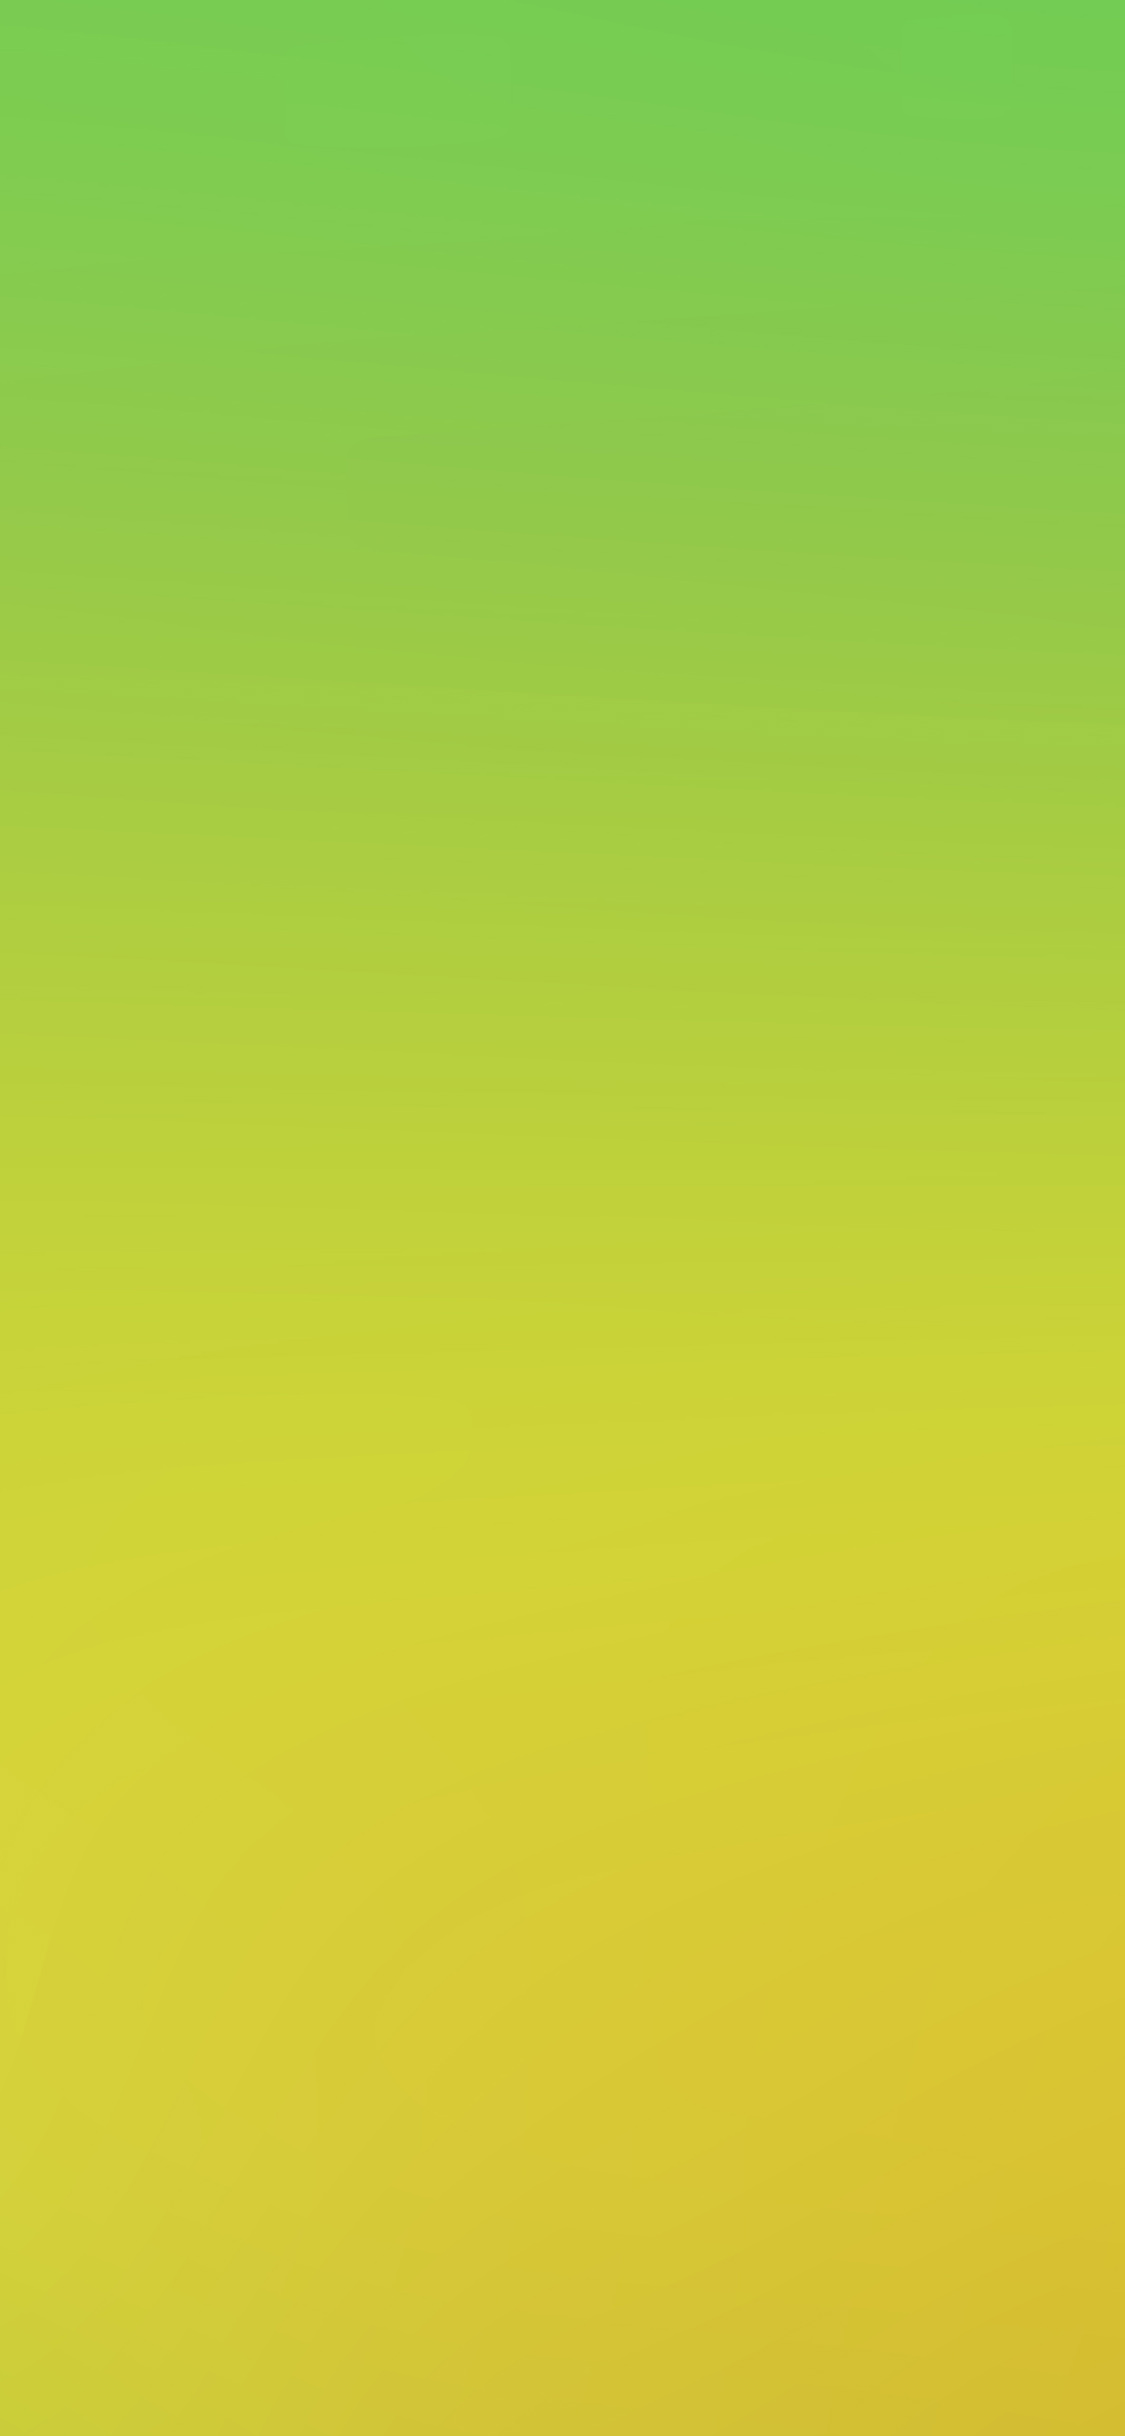 iPhoneXpapers.com-Apple-iPhone-wallpaper-si46-yellow-green-m16-gradation-blur